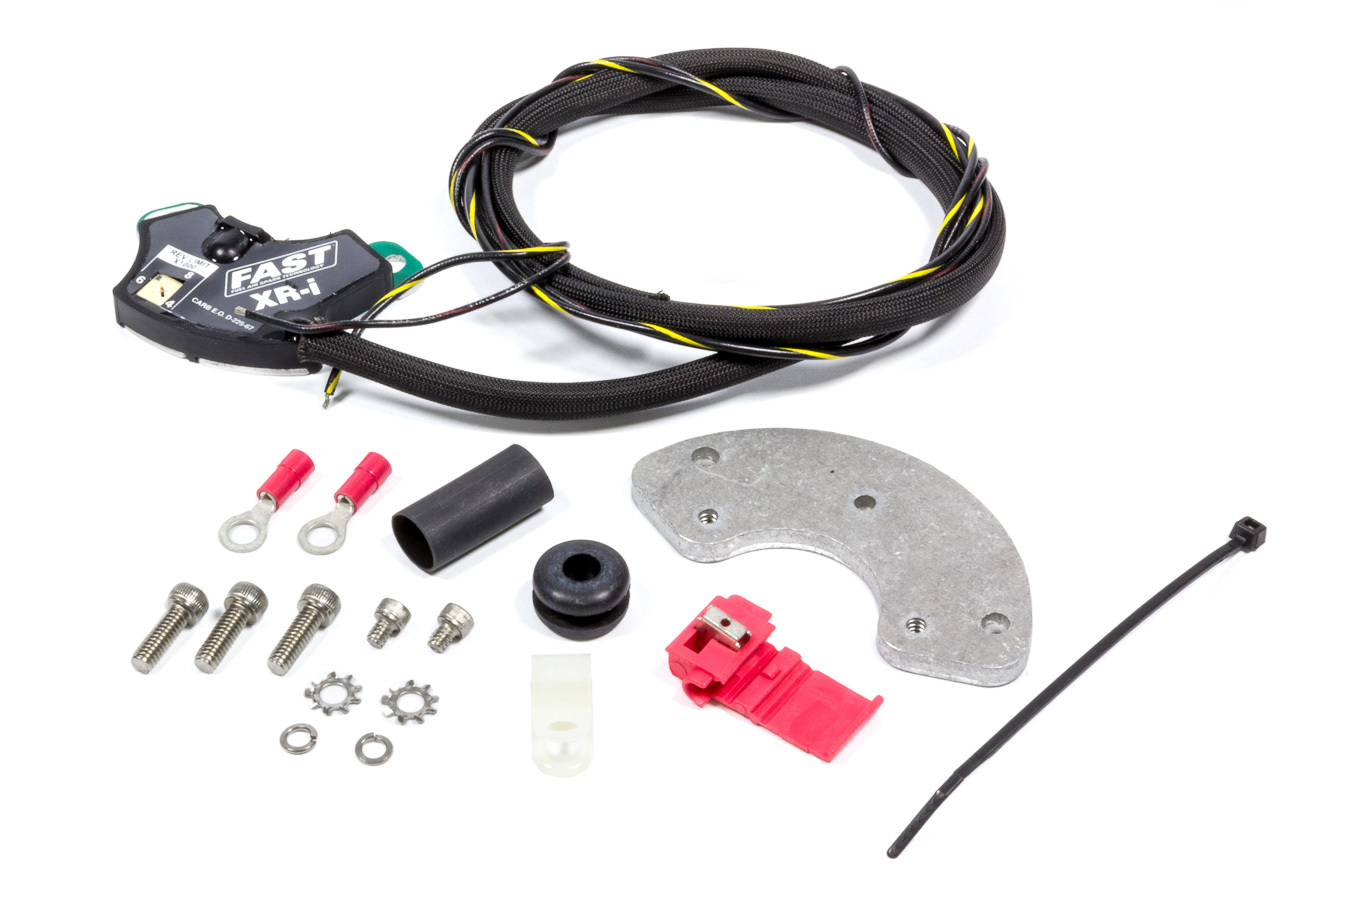 Fast Electronics 750-1710 Ignition Conversion Kit, XR-I, Points to Electronic, Distributor Cam Lobe Trigger, Rev Limiter, Chevy V8, Kit